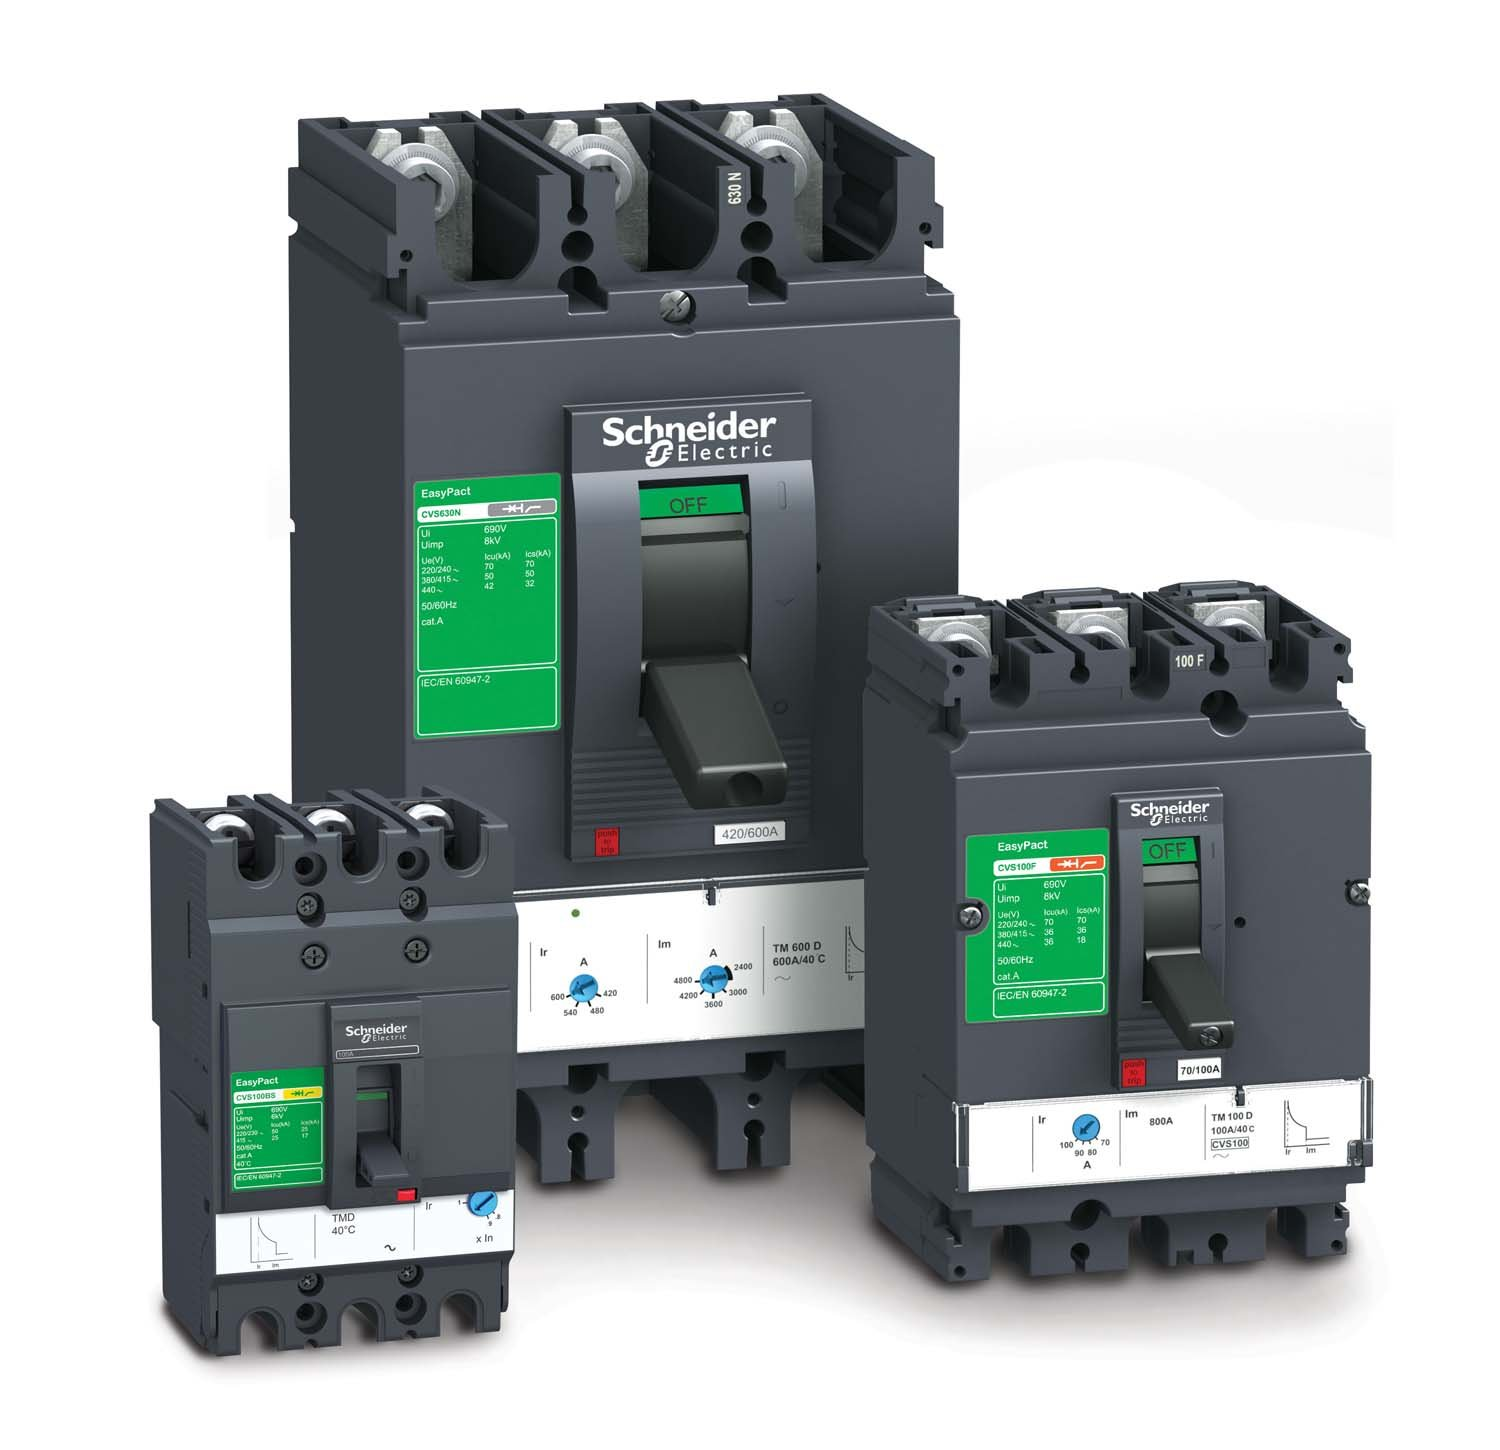 Schneider Electric Launches Easypact Cvs Range Of Circuit Breakers In South Africa on current limiting circuit breaker